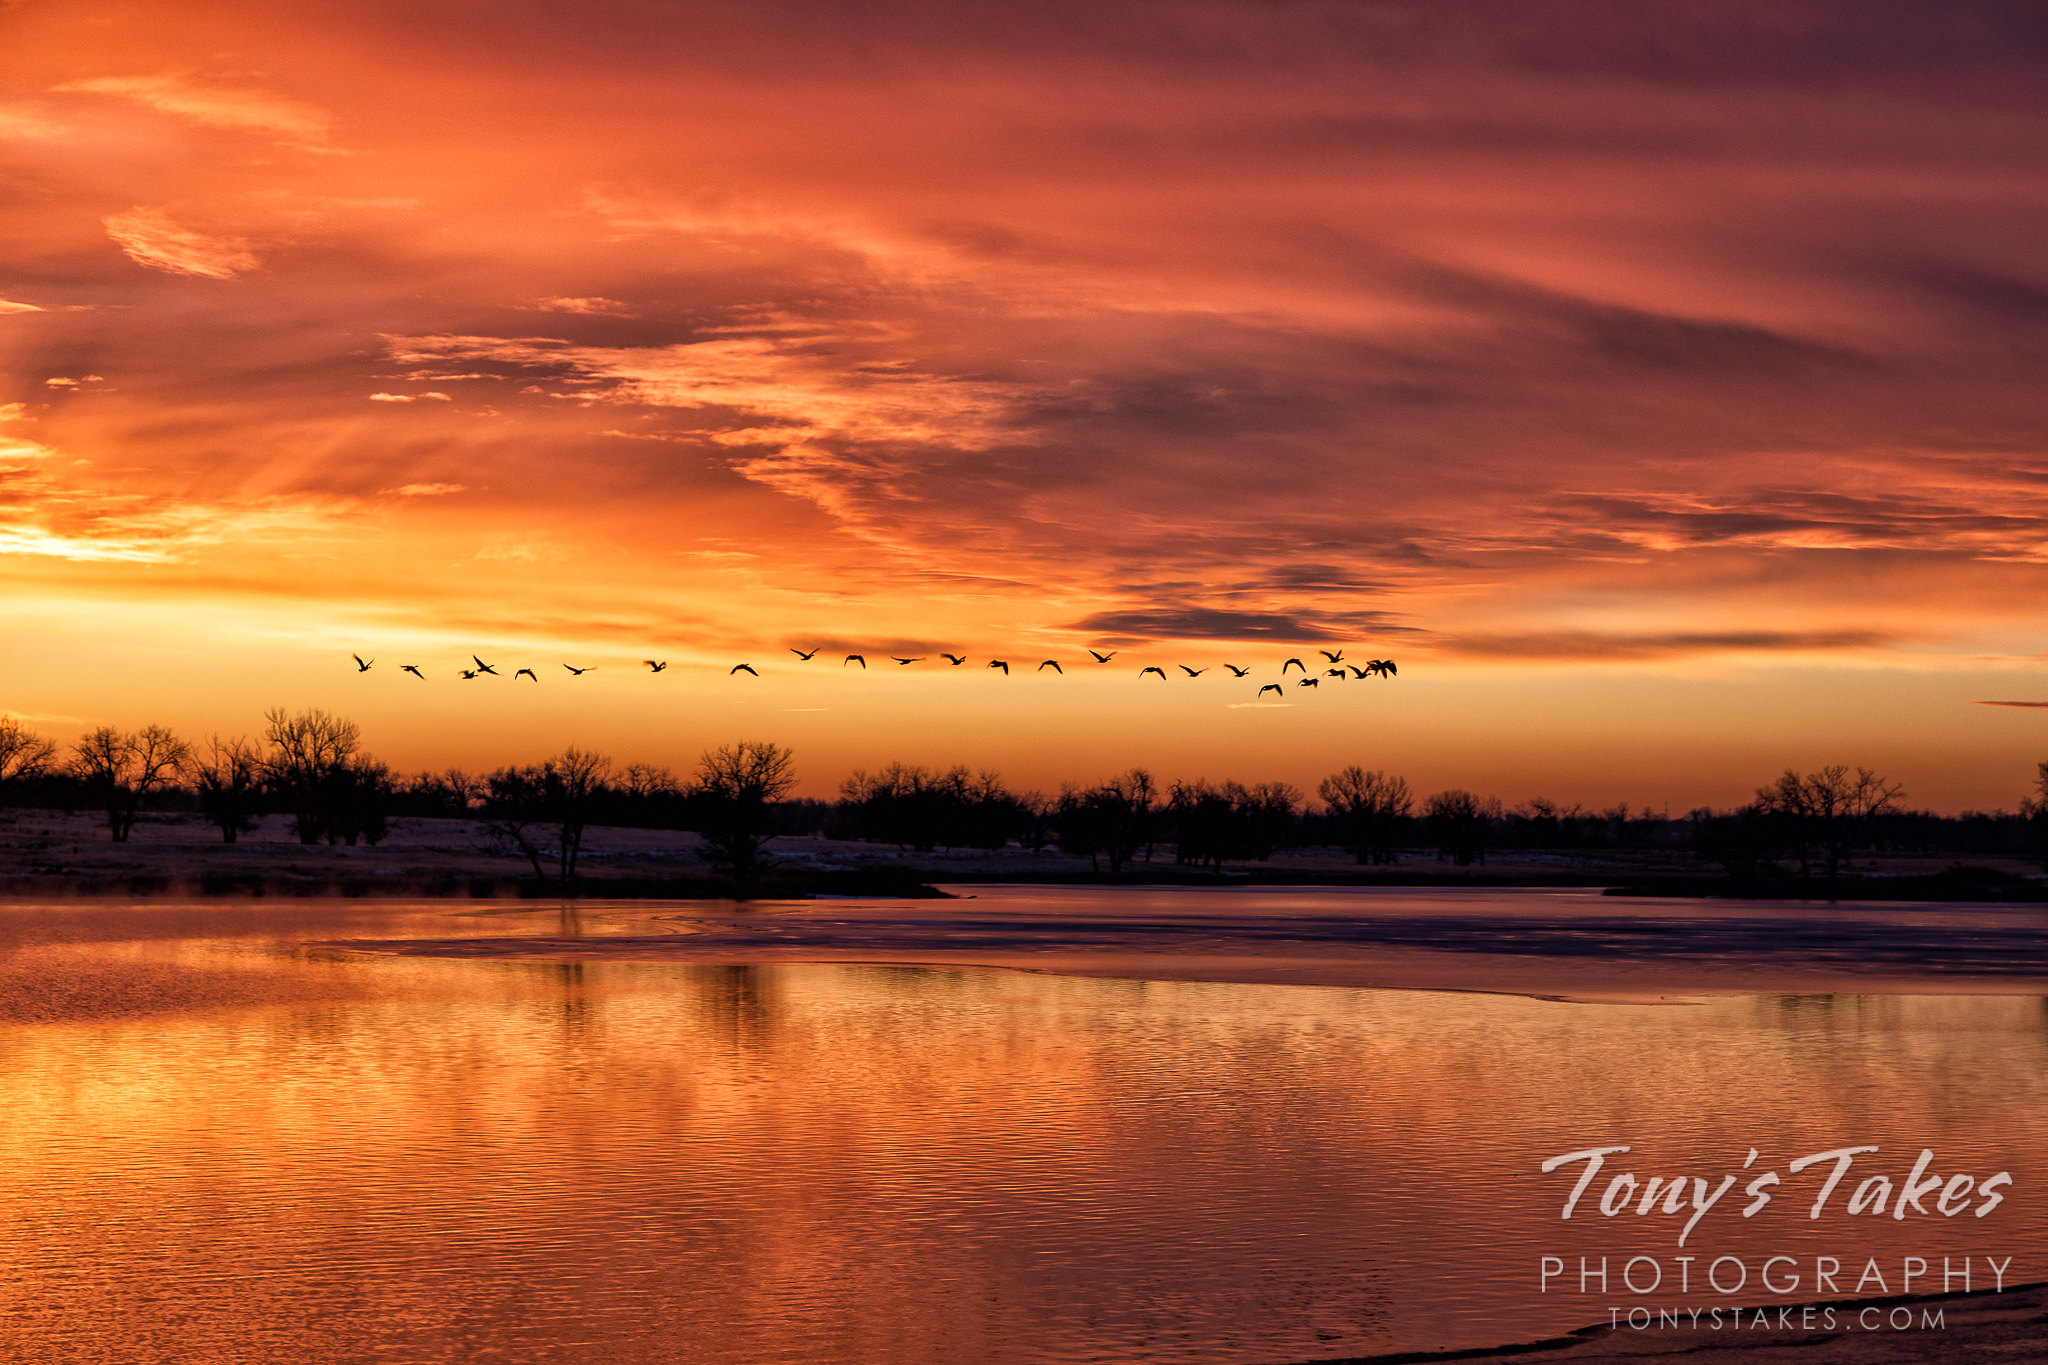 Geese take flight at sunrise